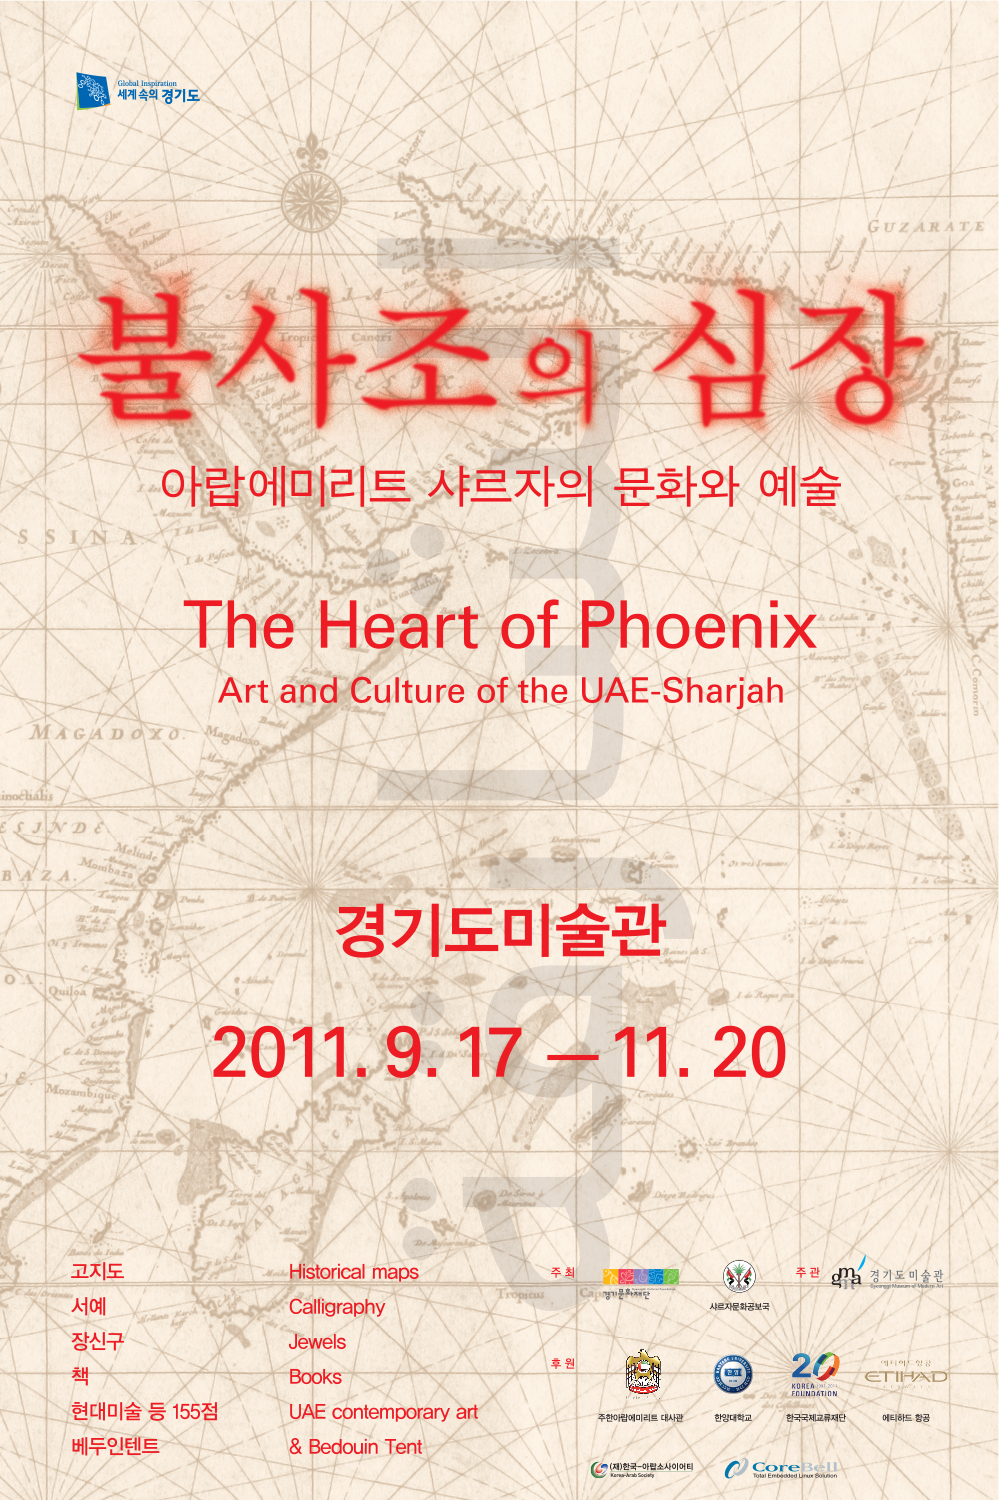 The Heart of Phoenix: Art and Culture of the UAE-Sharjah